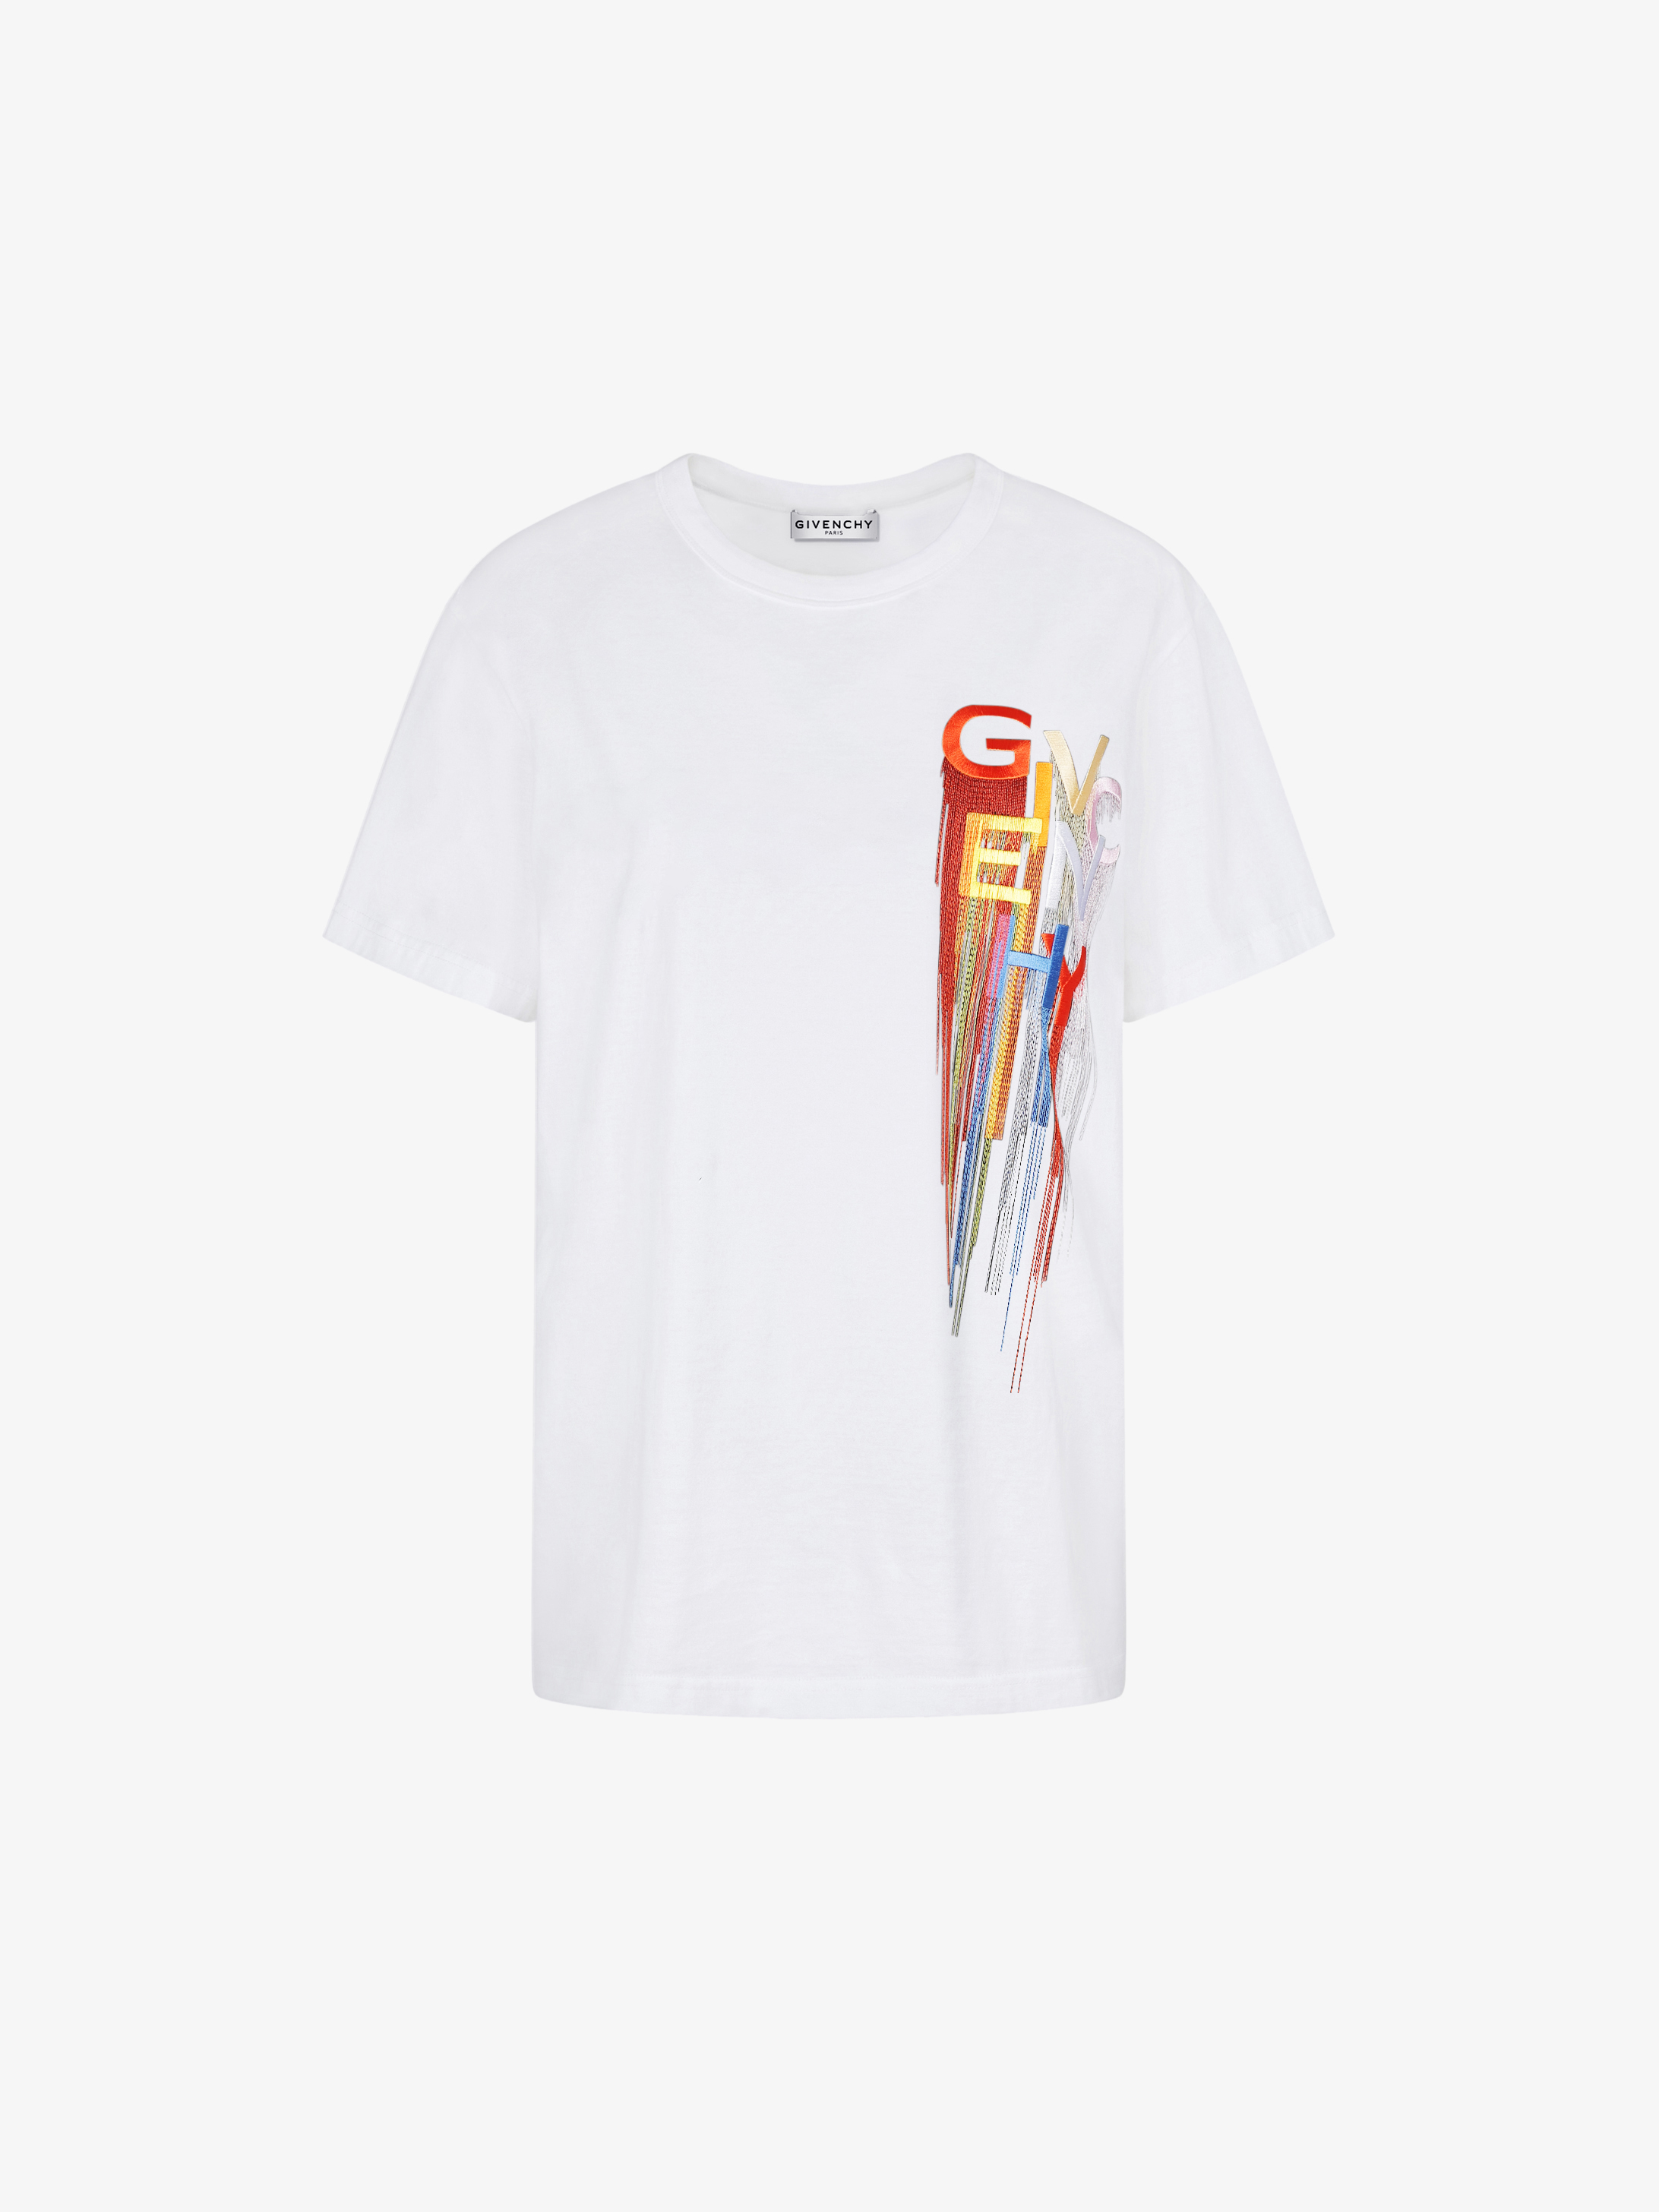 GIVENCHY multicolored embroidered t-shirt